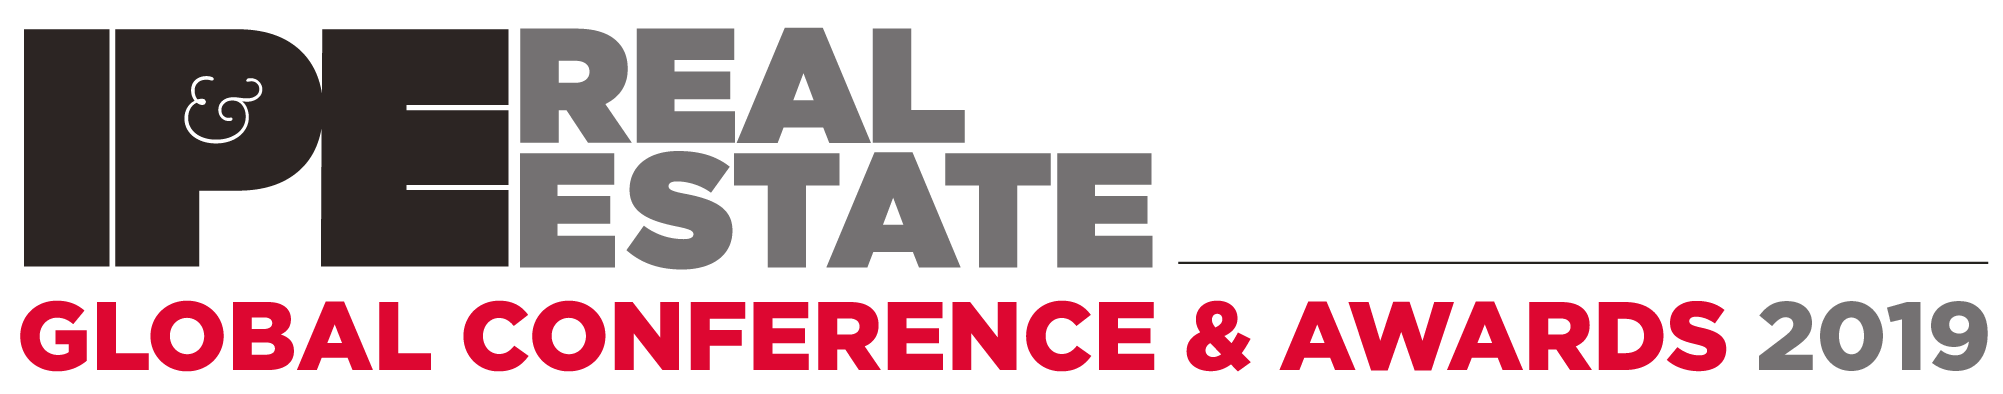 IPE Real Estate Global Conference & Awards 2019